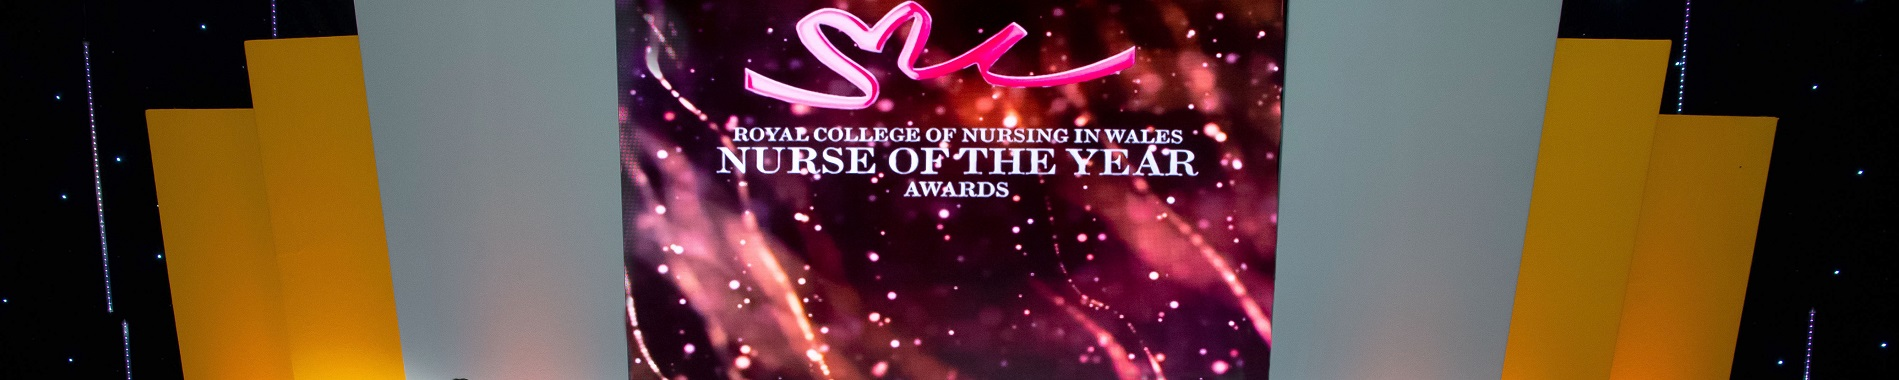 Nurse of the Year award 2018 banner 2